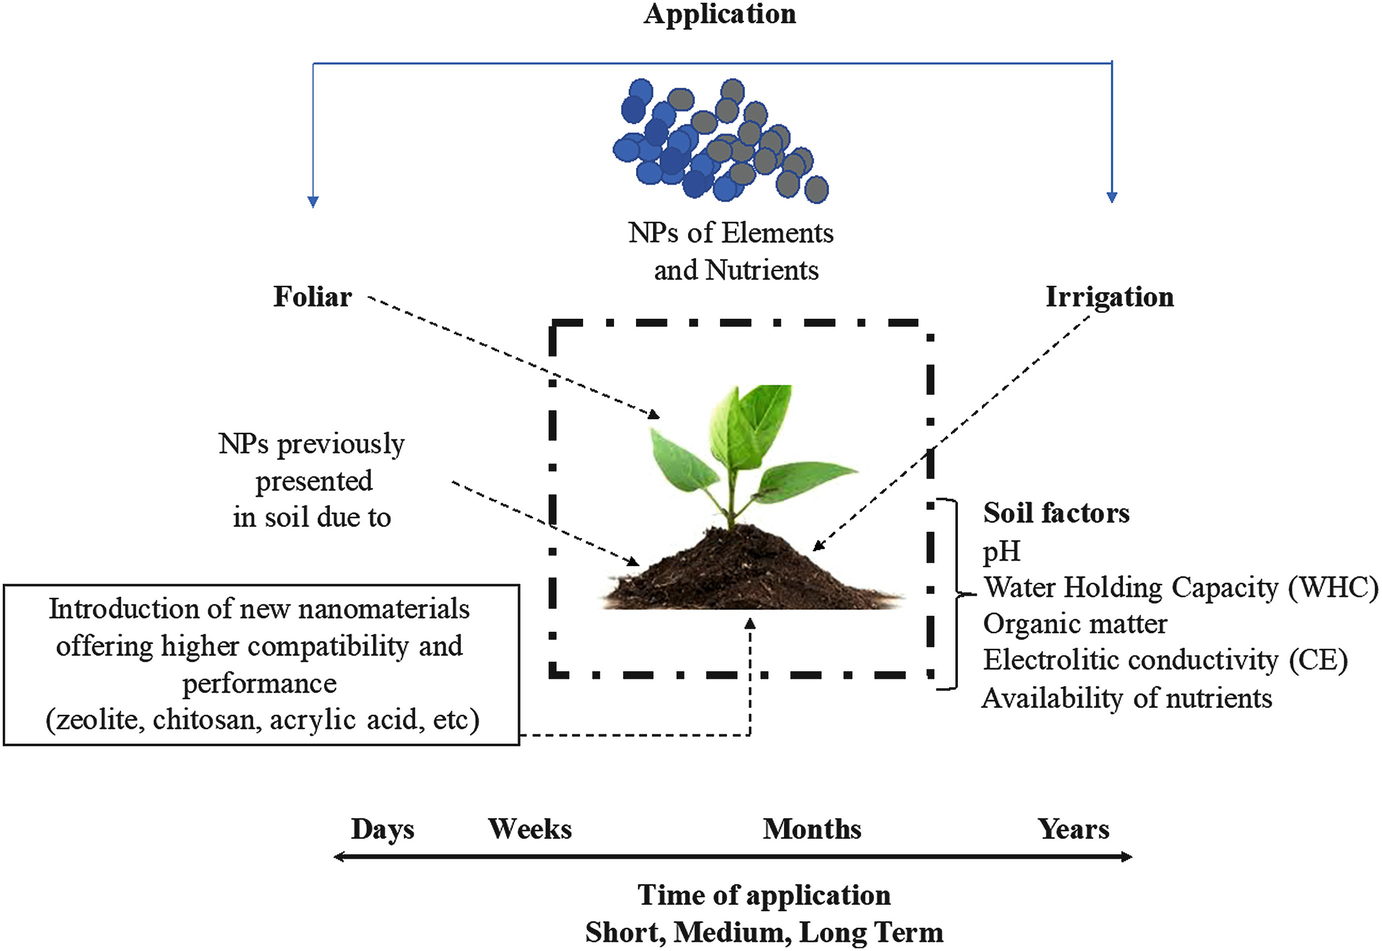 Incorporation of Nanoparticles into Plant Nutrients: The